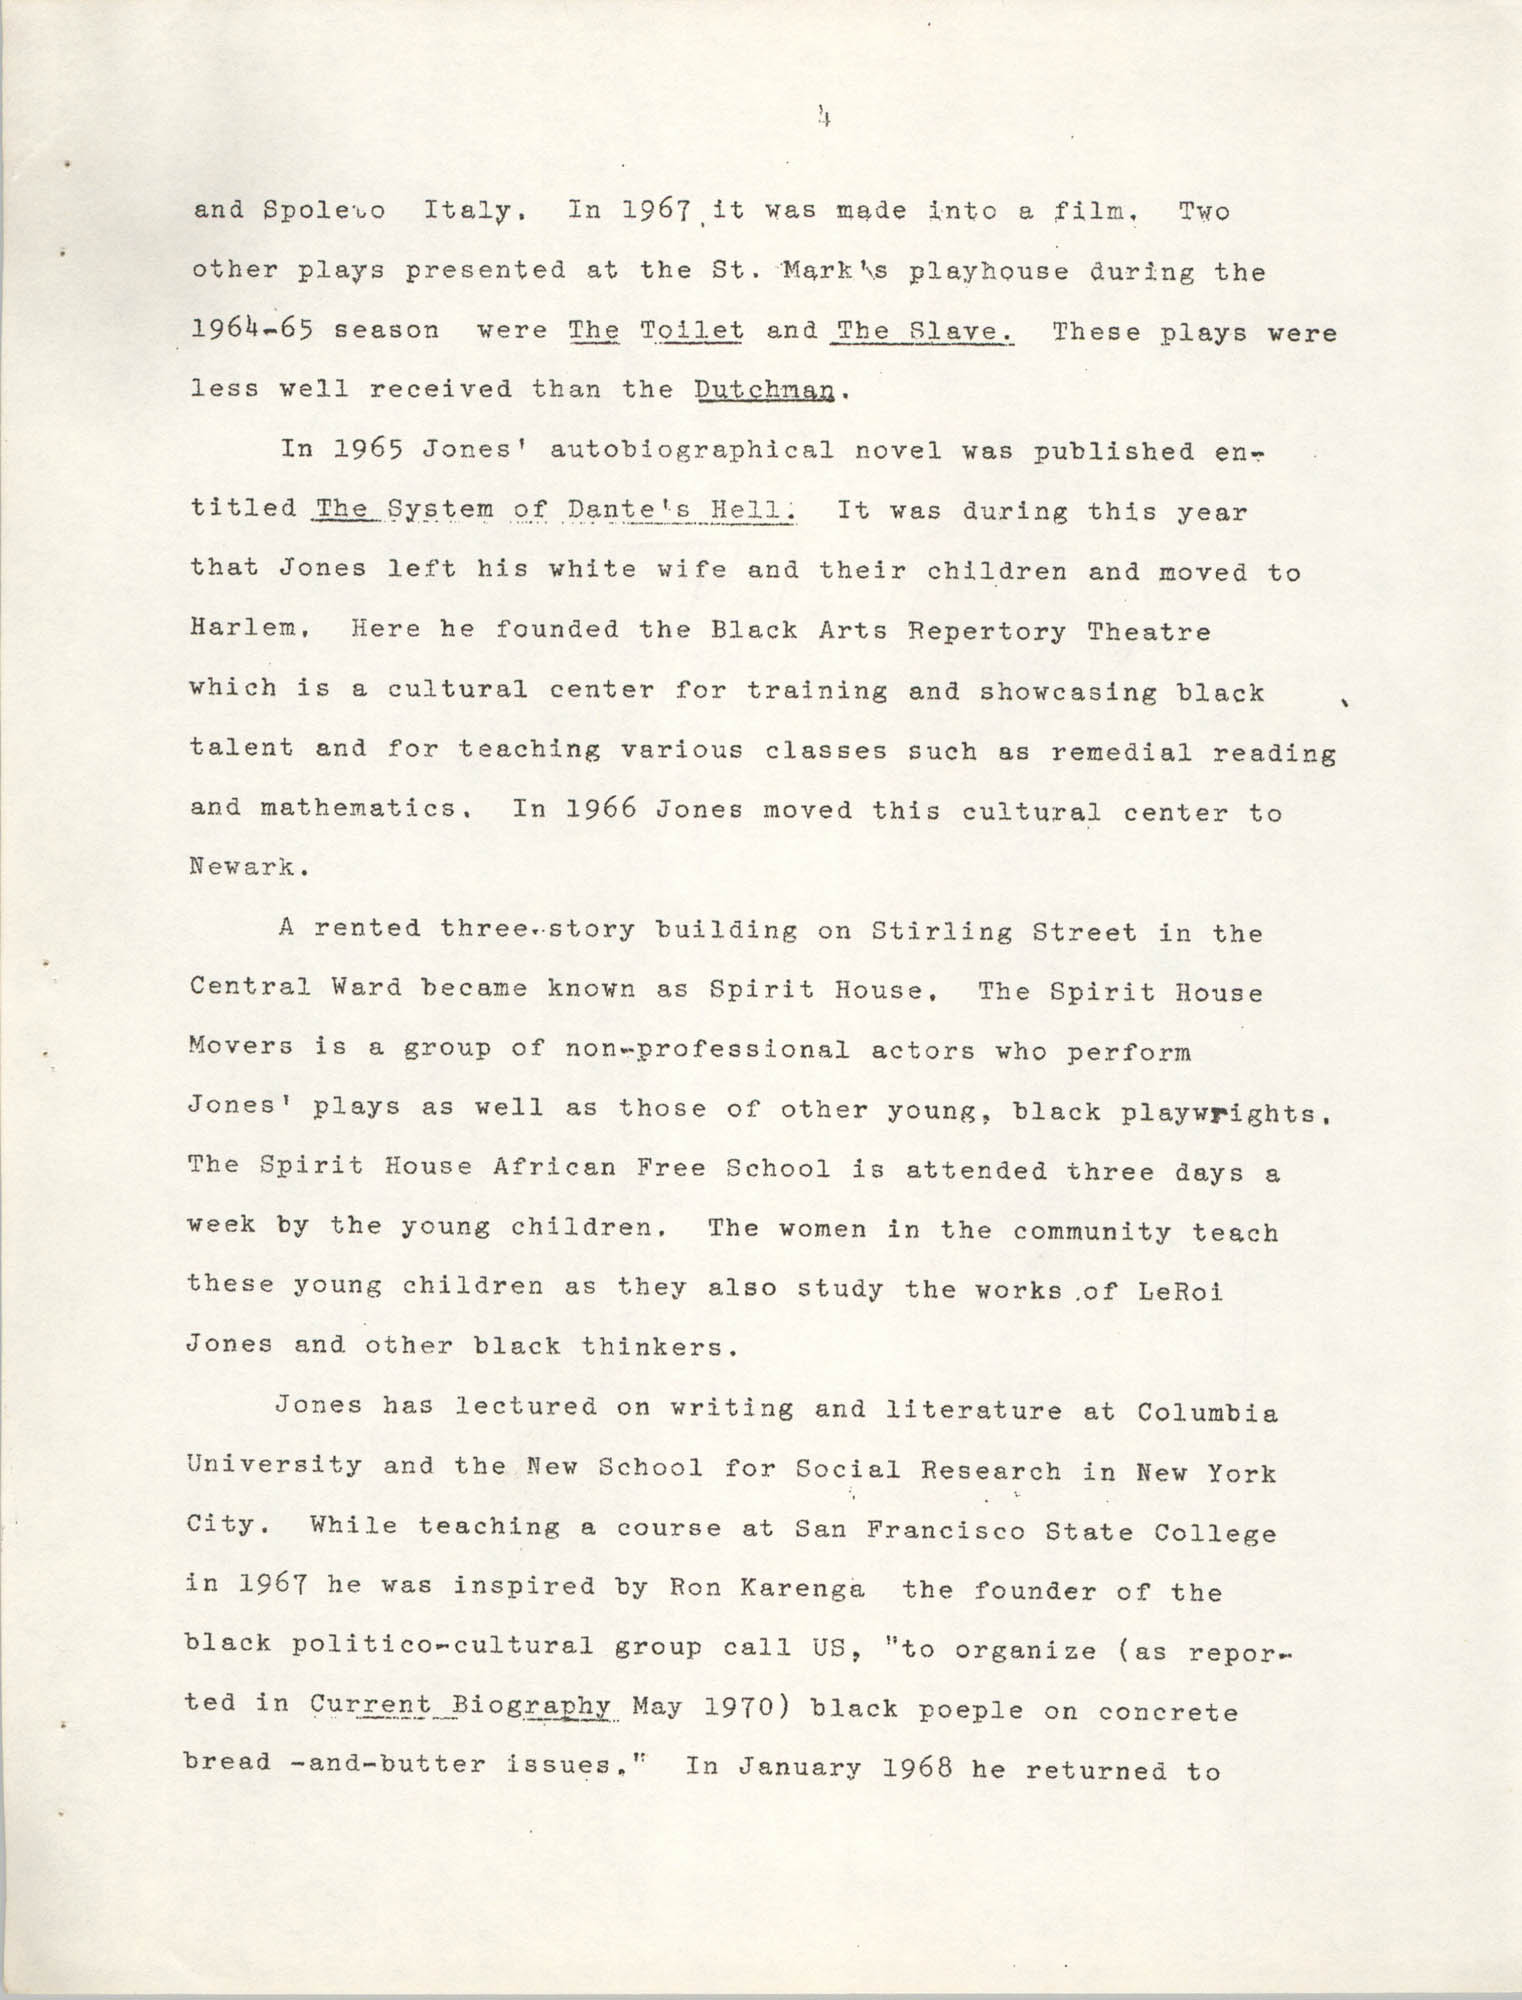 Center for African and African-American Studies Bibliography No. 2, Page 4